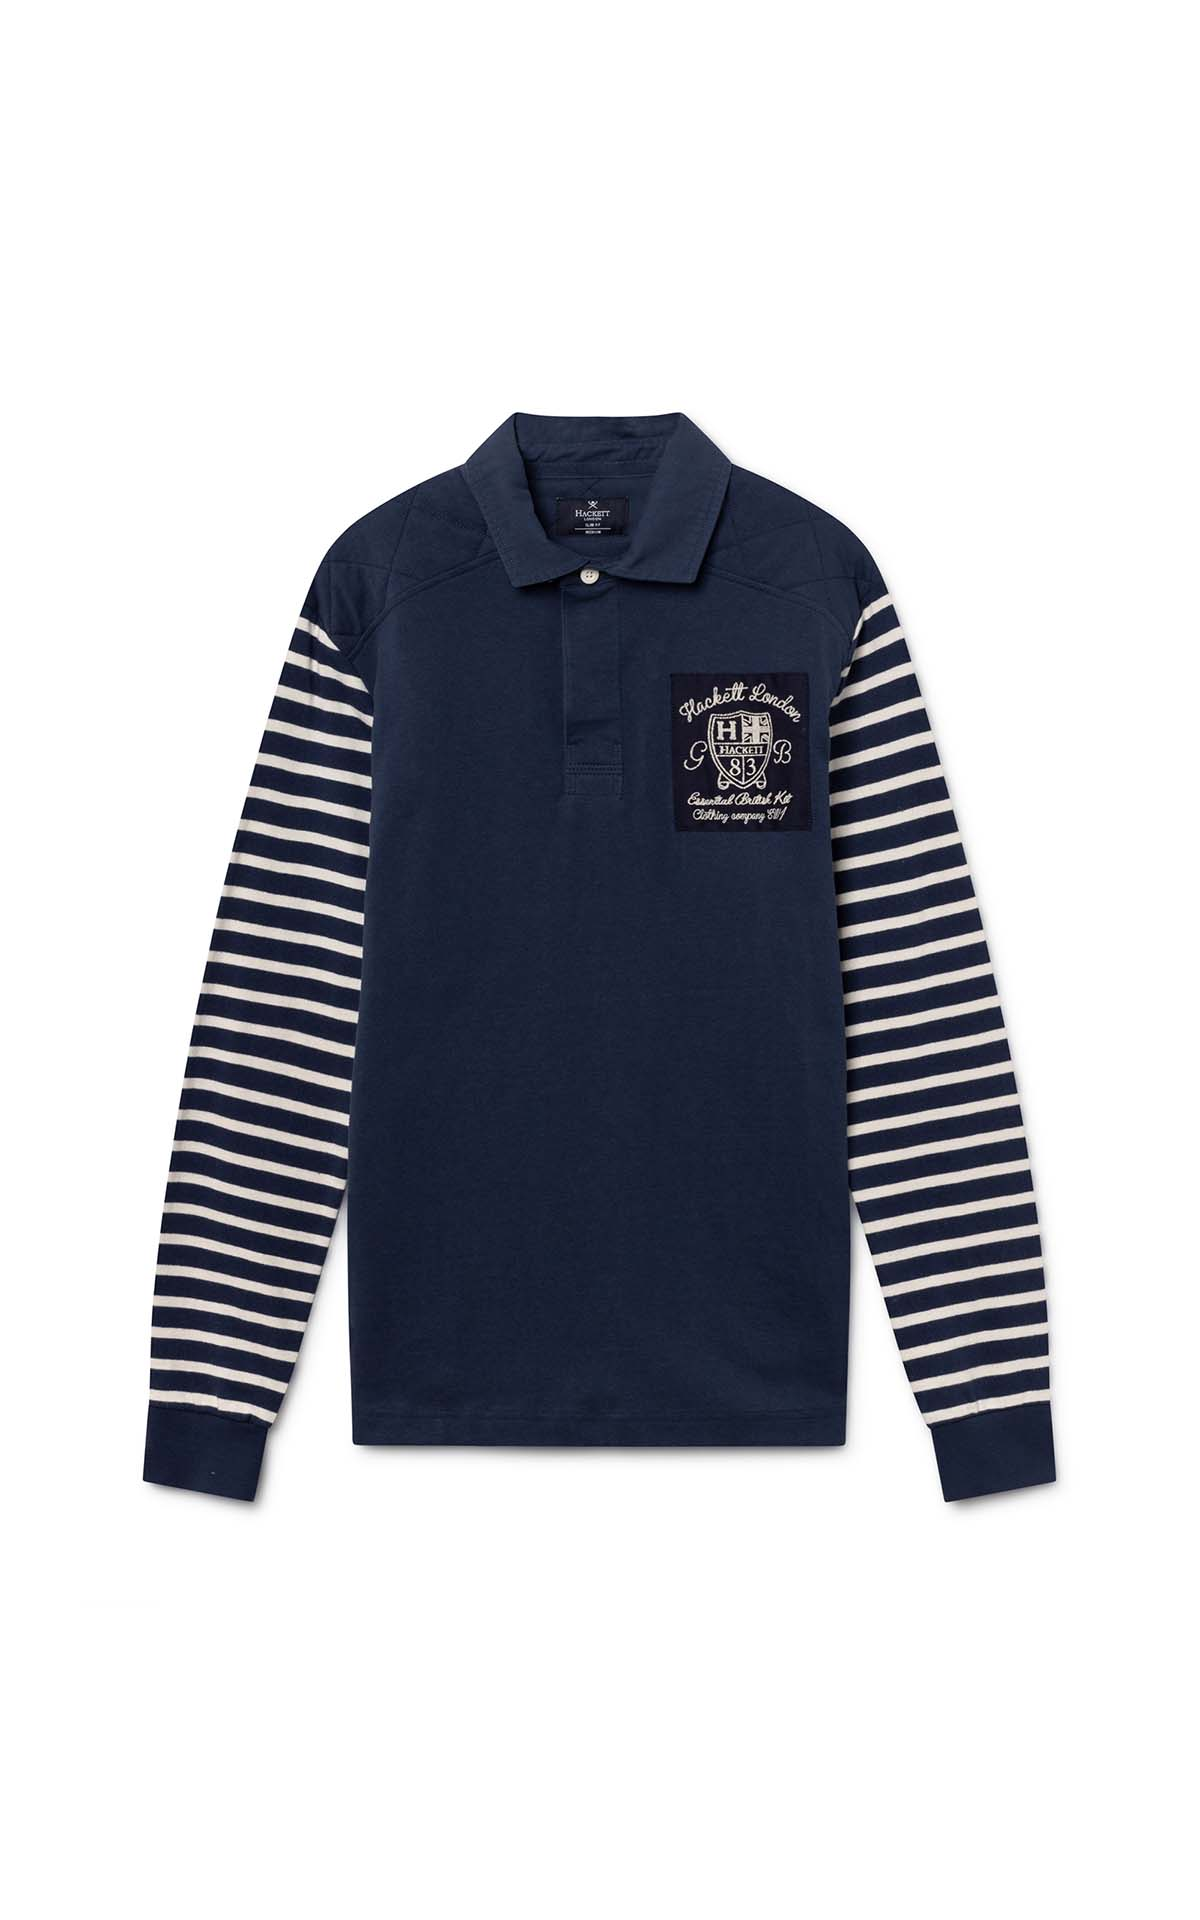 Hackett London Nautical rugby